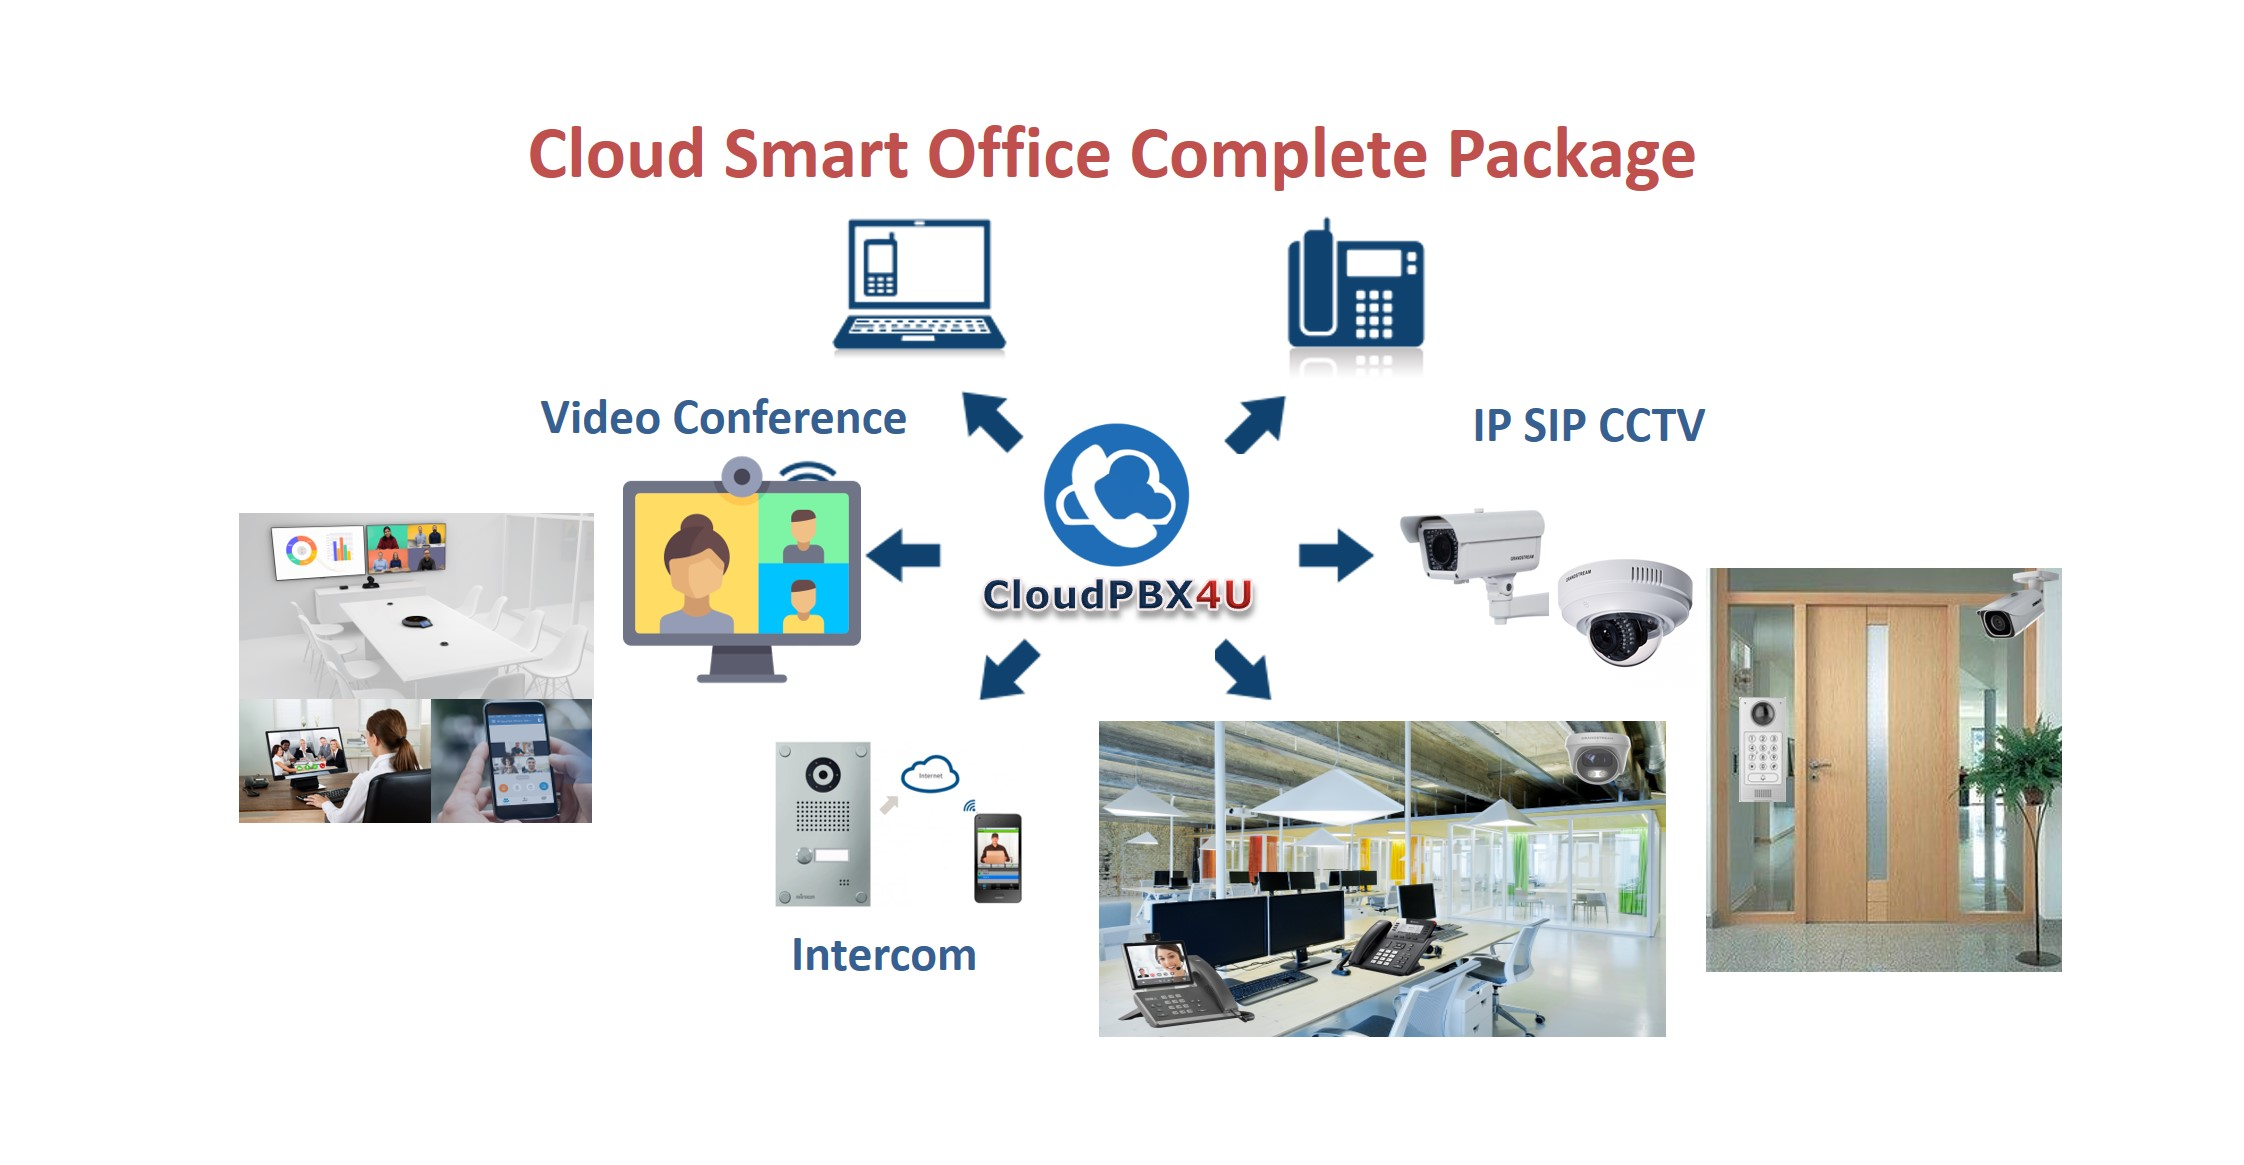 Cloud Smart Office